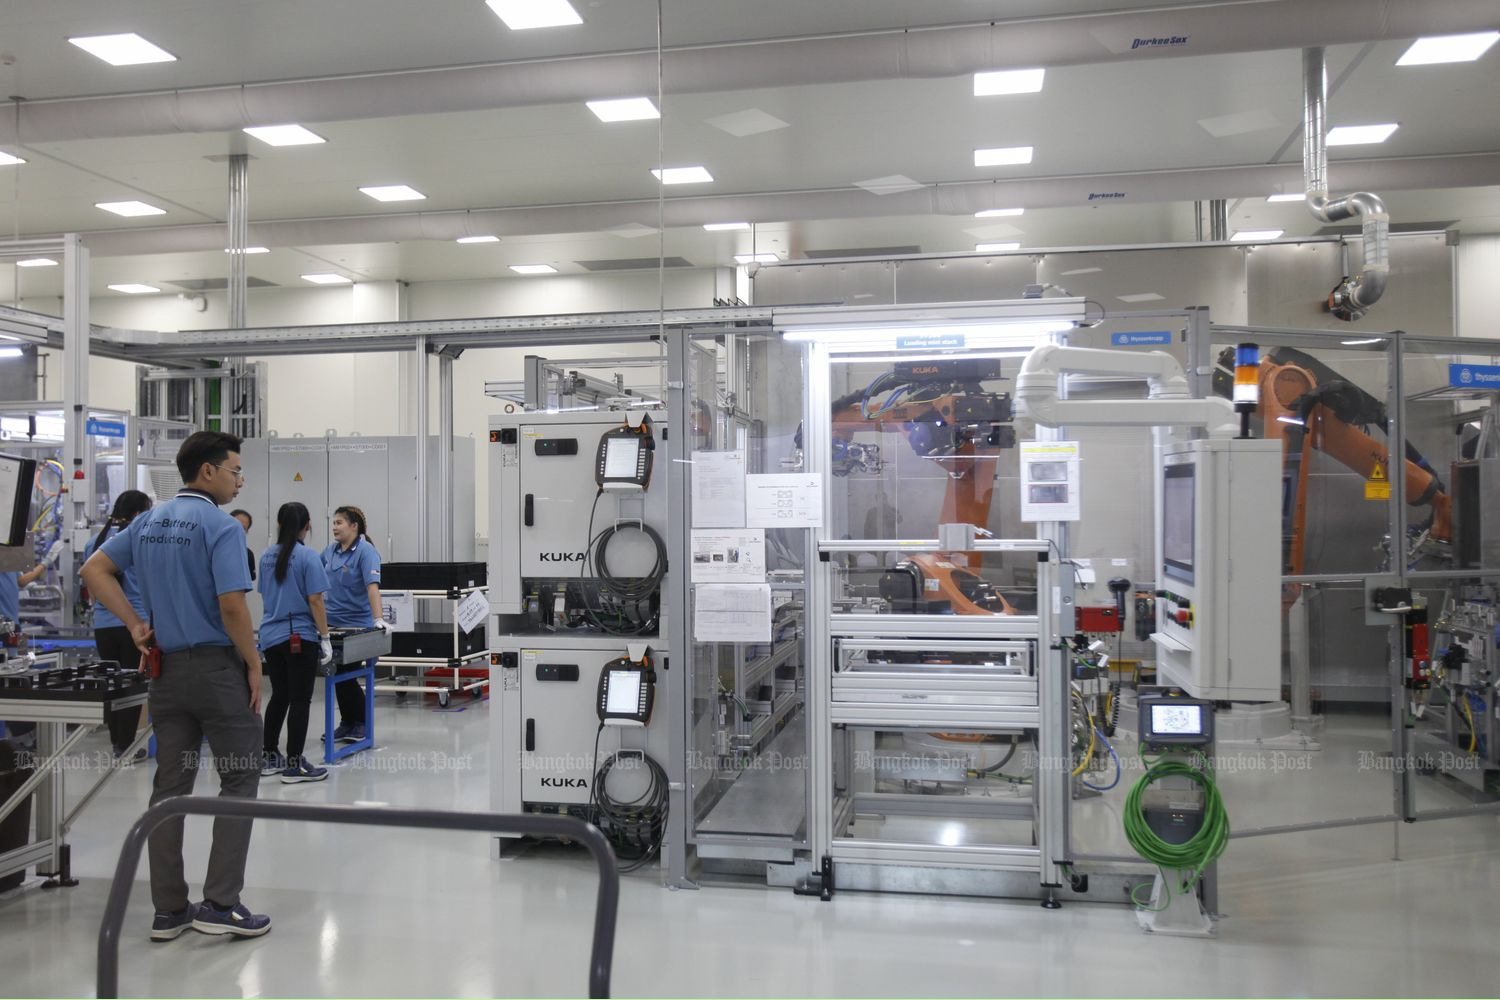 The high voltage battery production plant of BMW Group Manufacturing Thailand at WHA Chonburi Industrial Estate 2 on Sept 6. (Photo by Watcharawit Phudork)